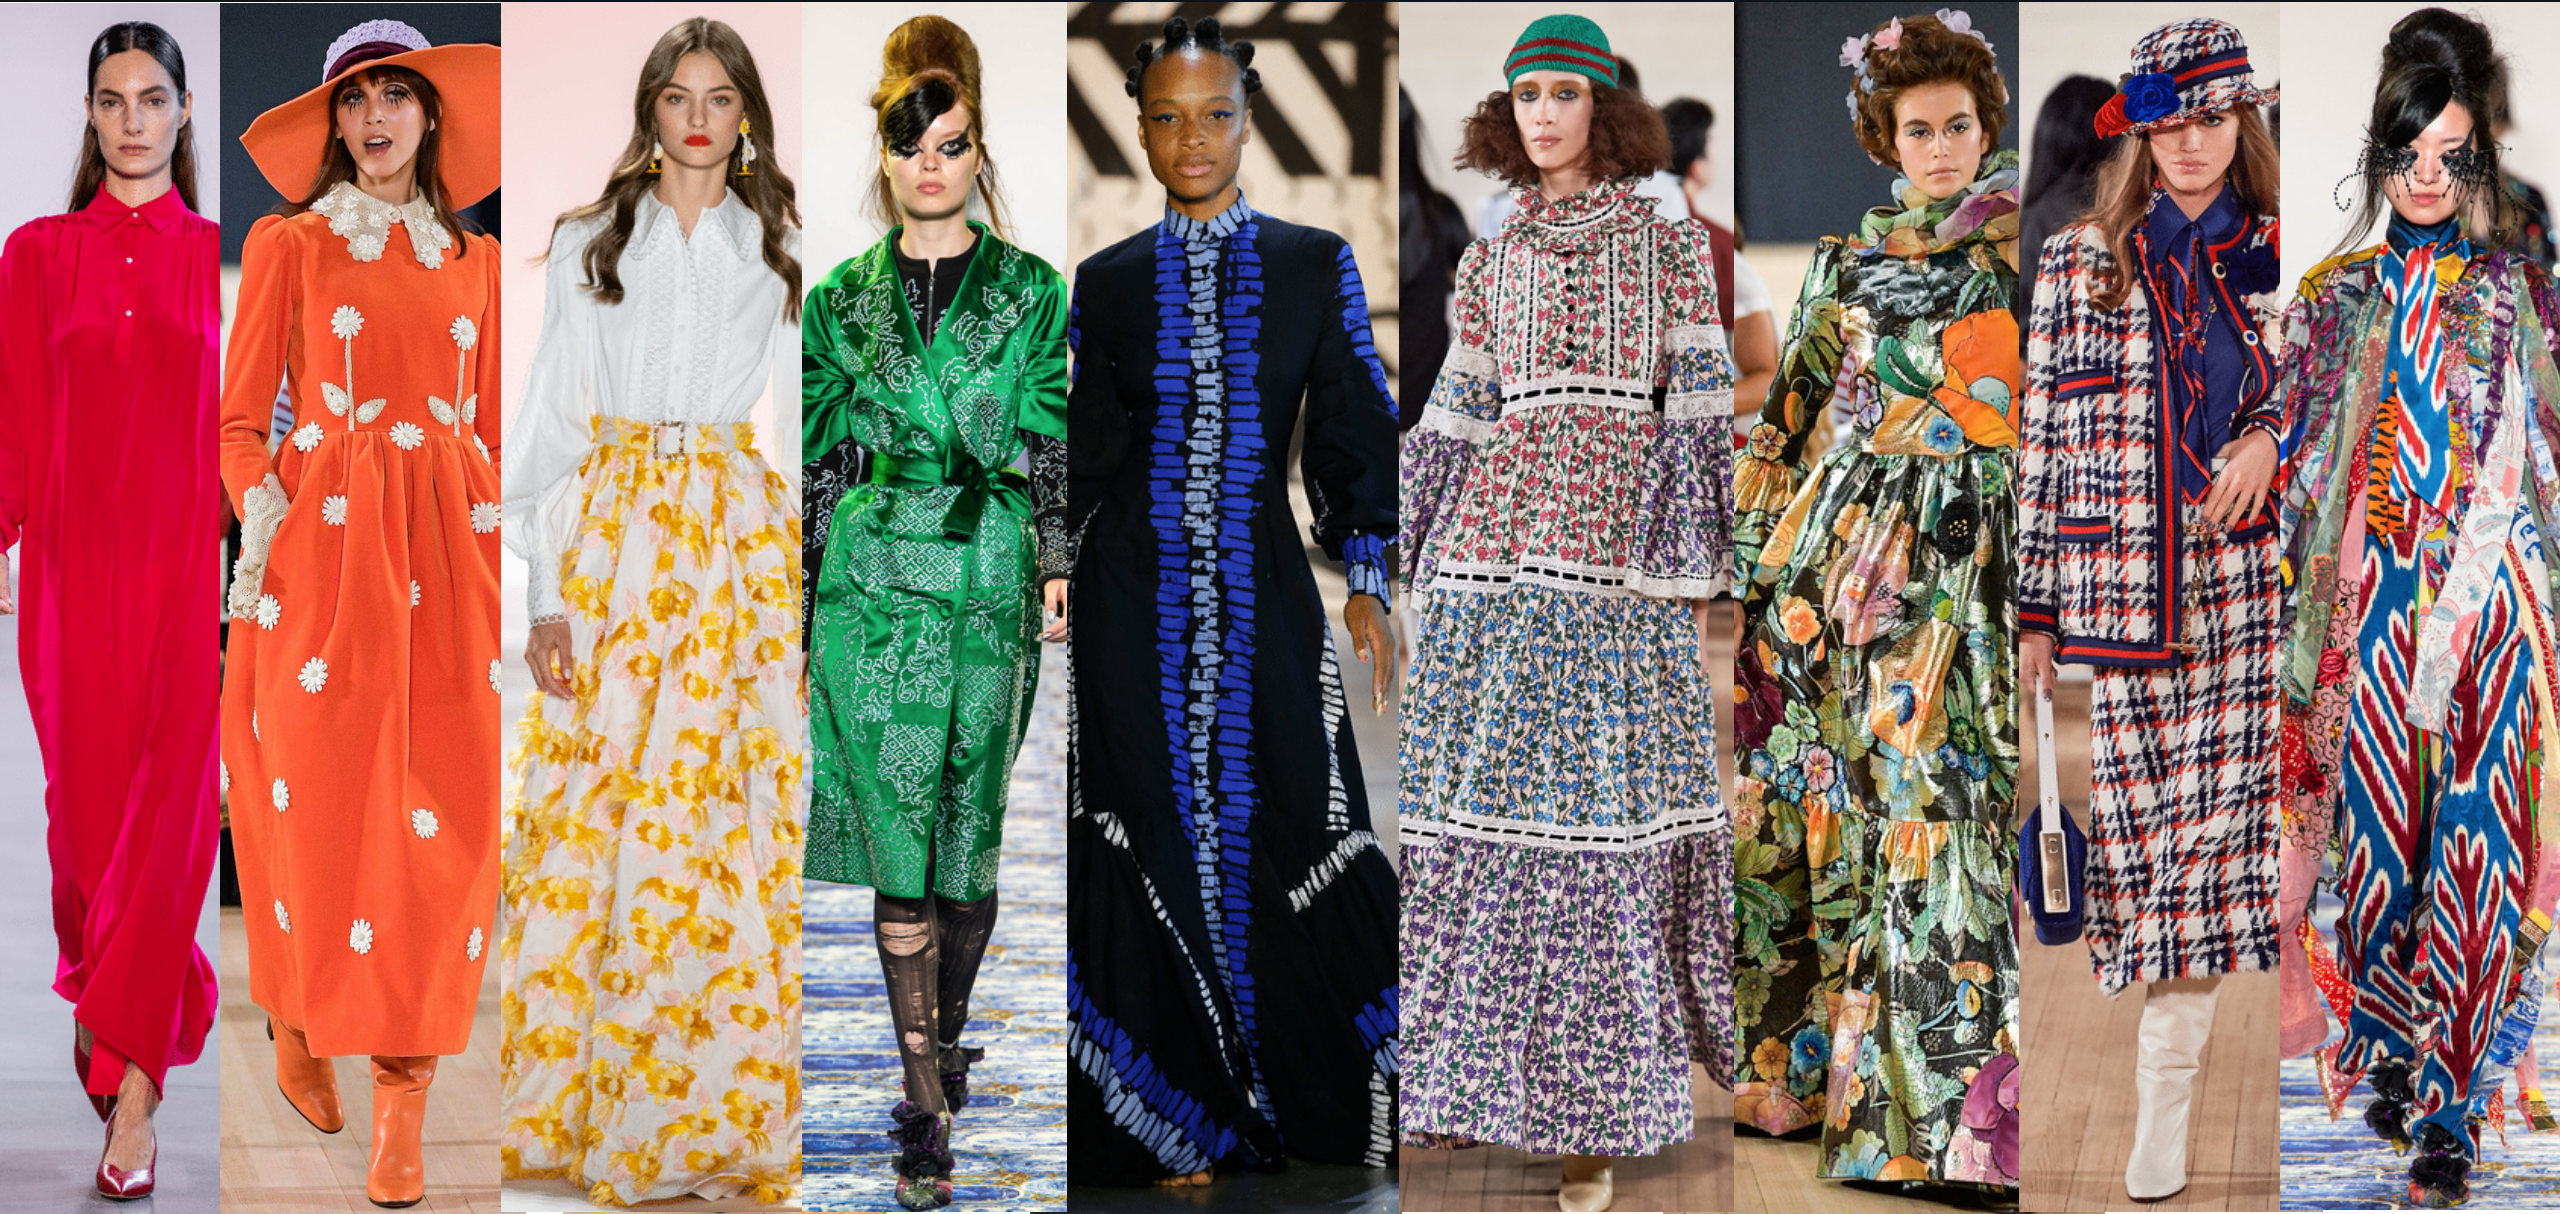 Trends For Spring 2020.The Top Ten Modest Trends From Spring 2020 Fashion Week